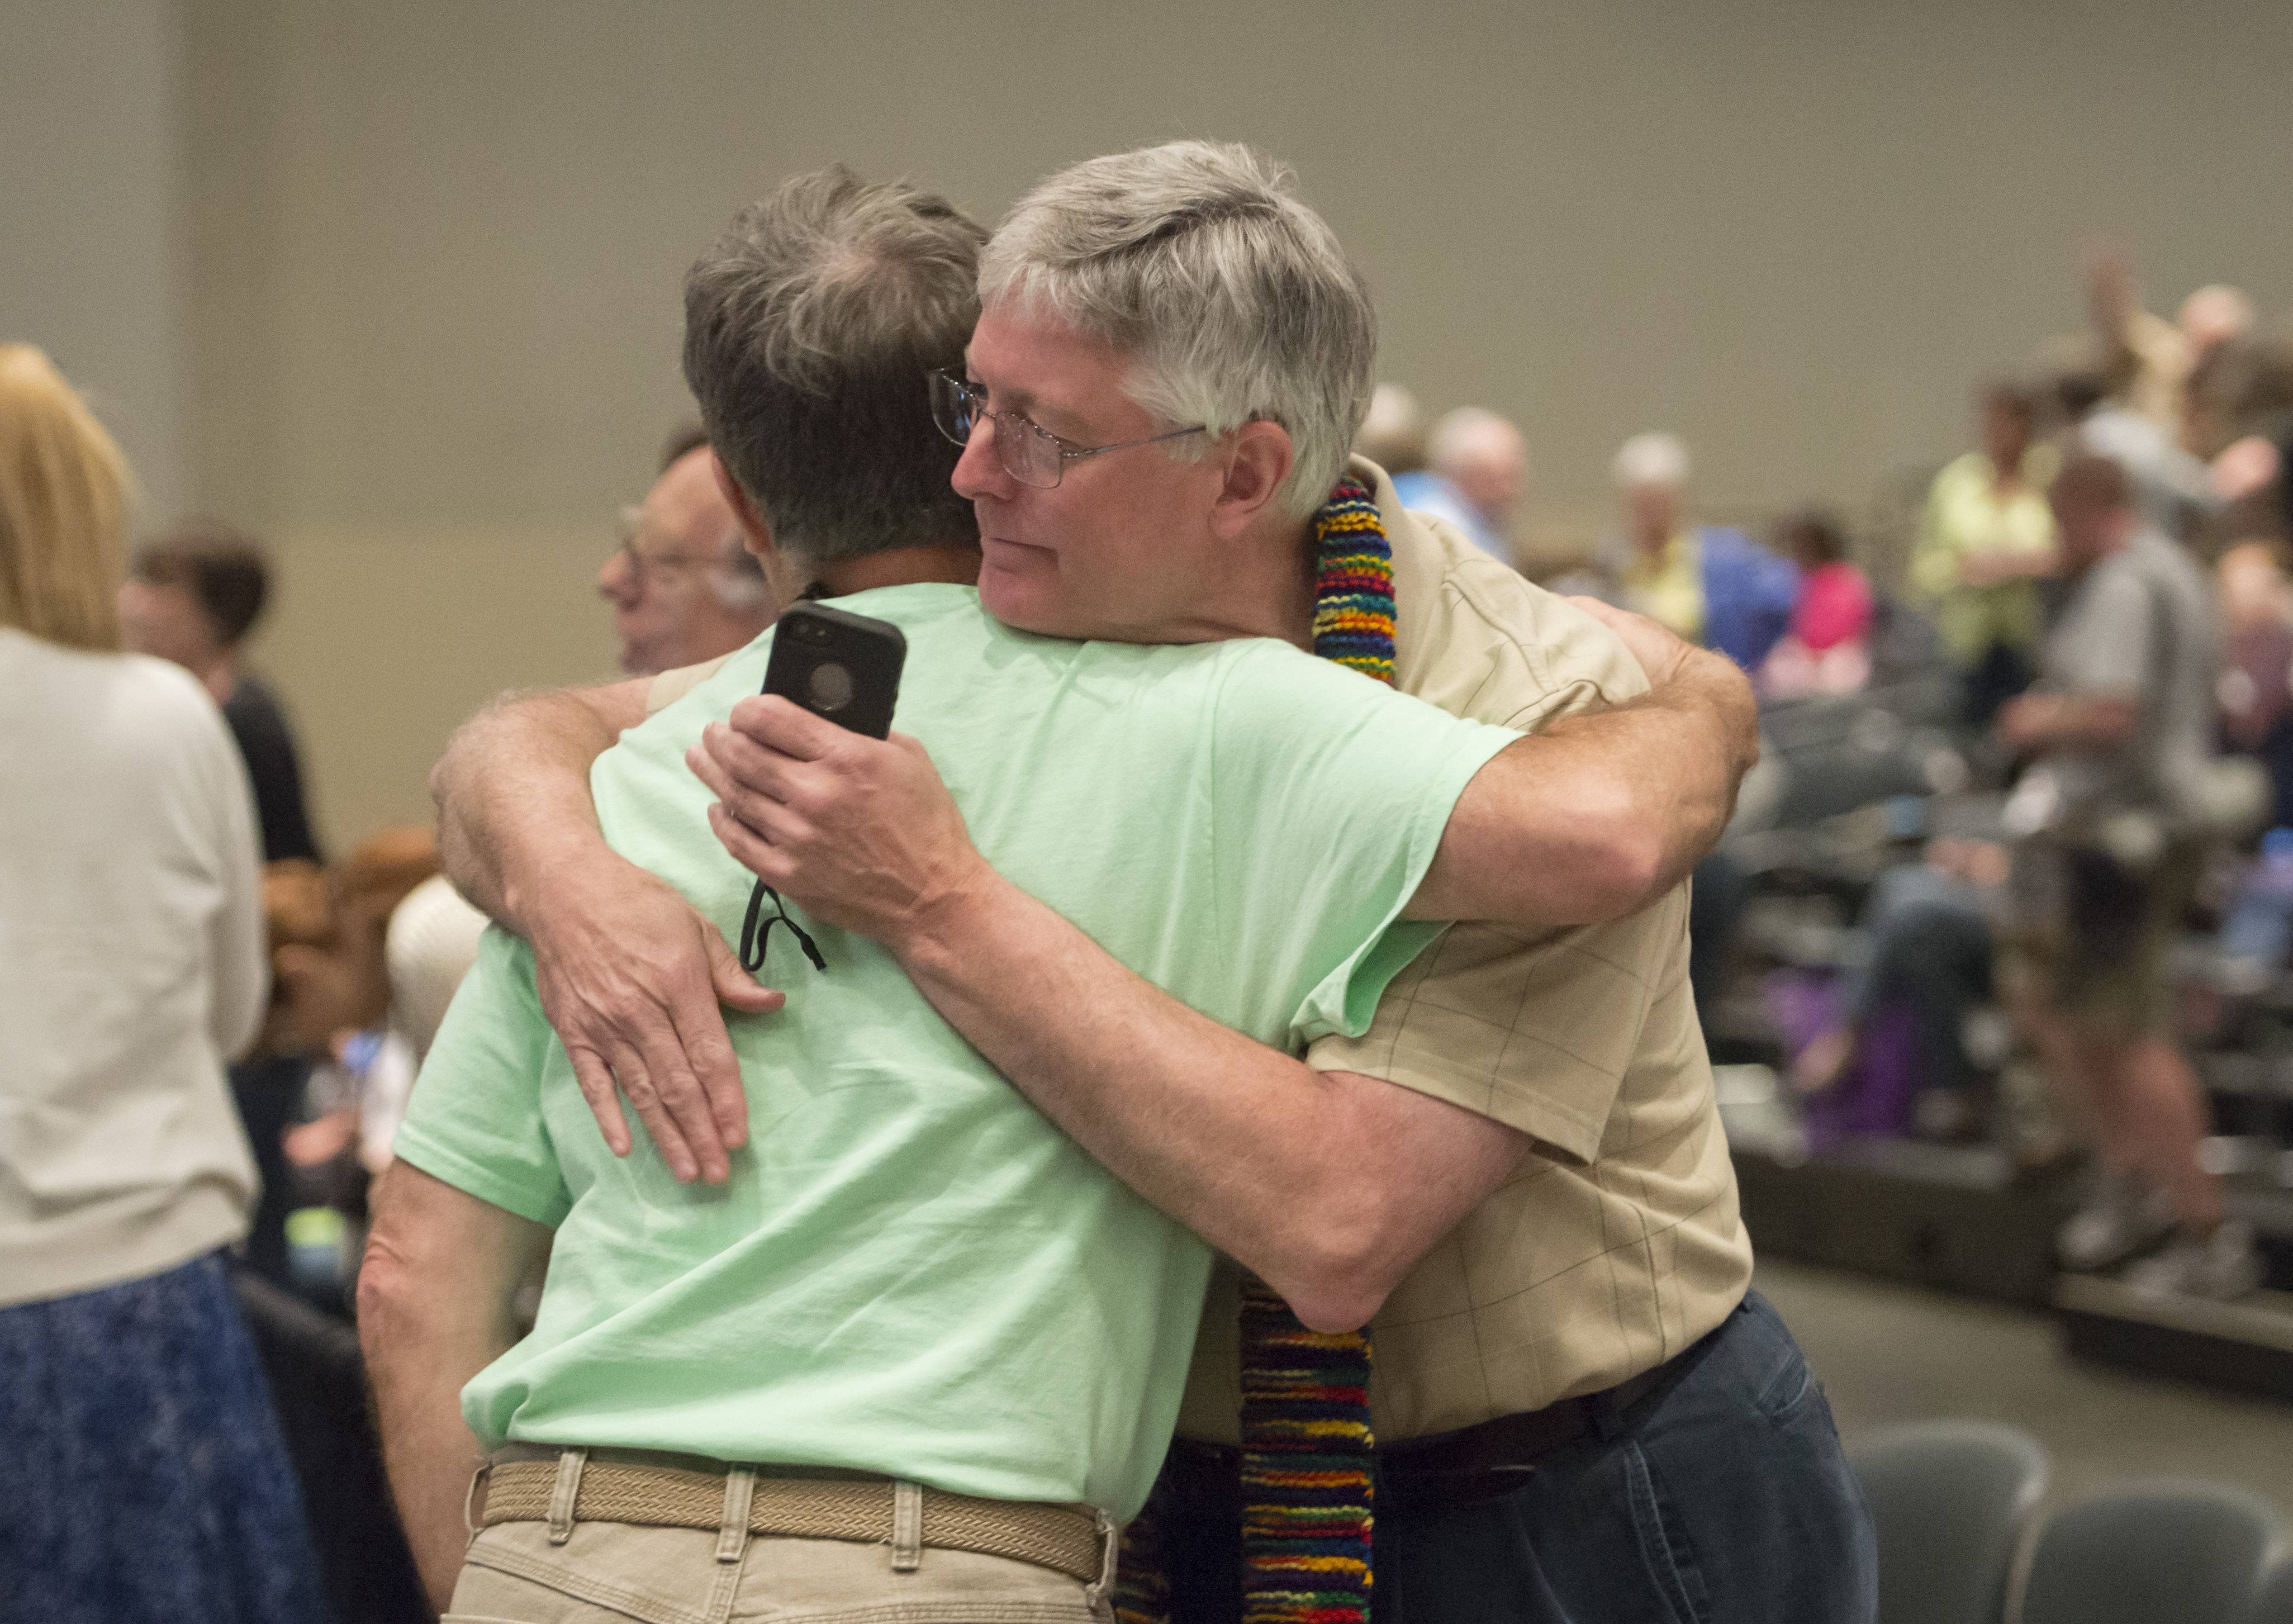 Presbyterian assembly: Gay marriage is Christian